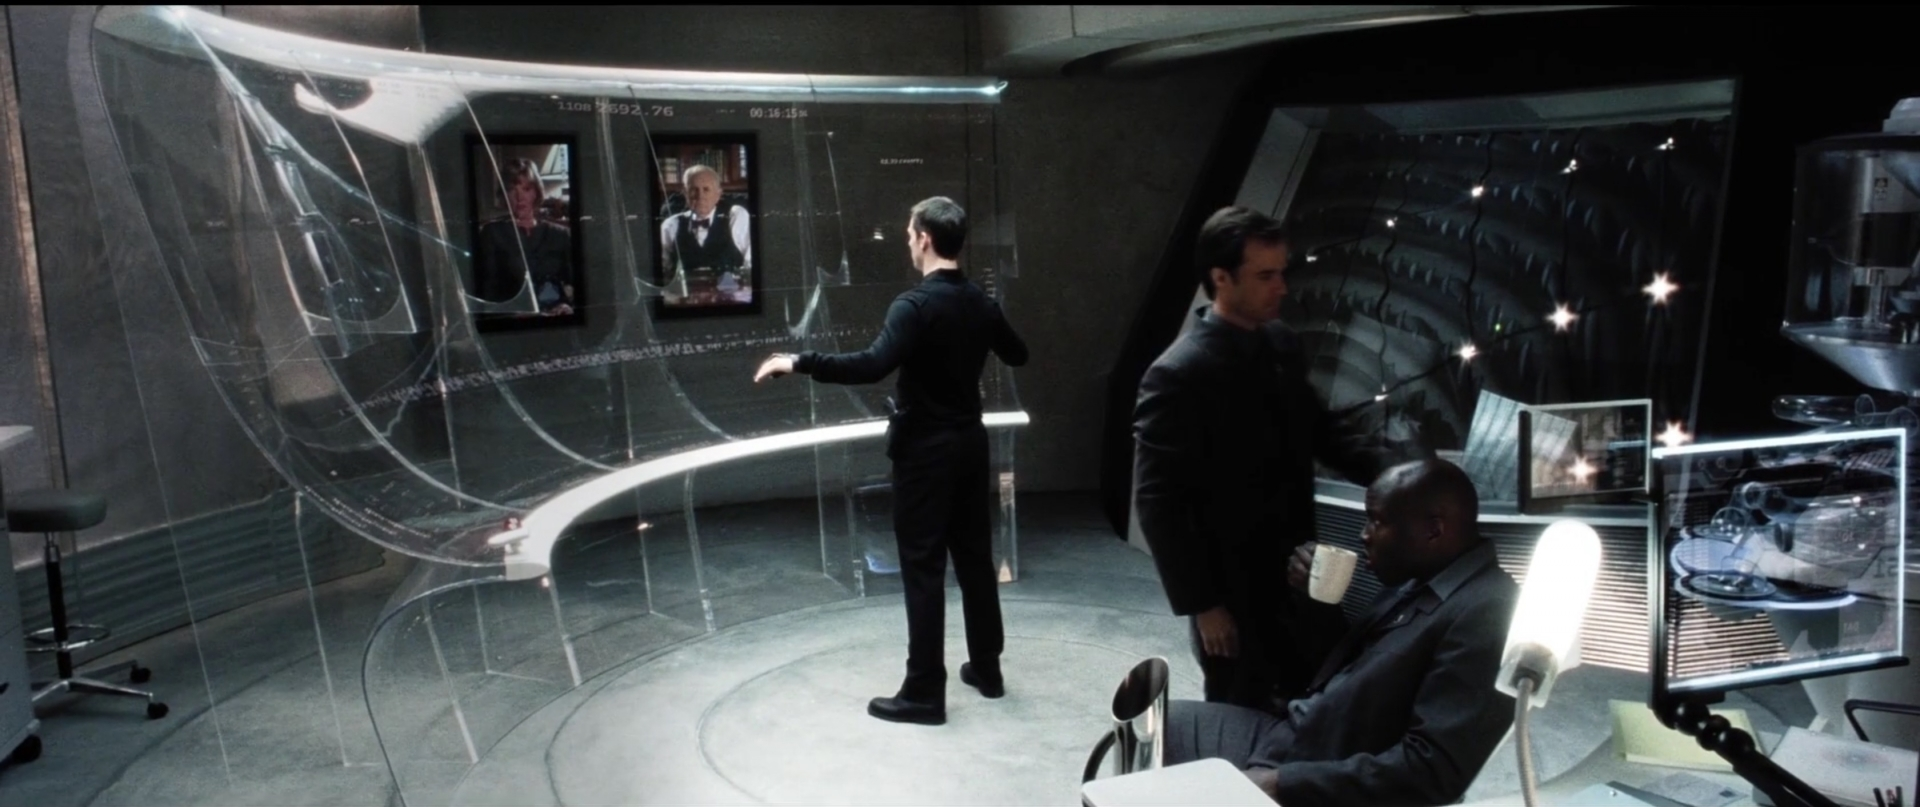 "Tom Cruise using the interface from the movie ""Minority Report"""